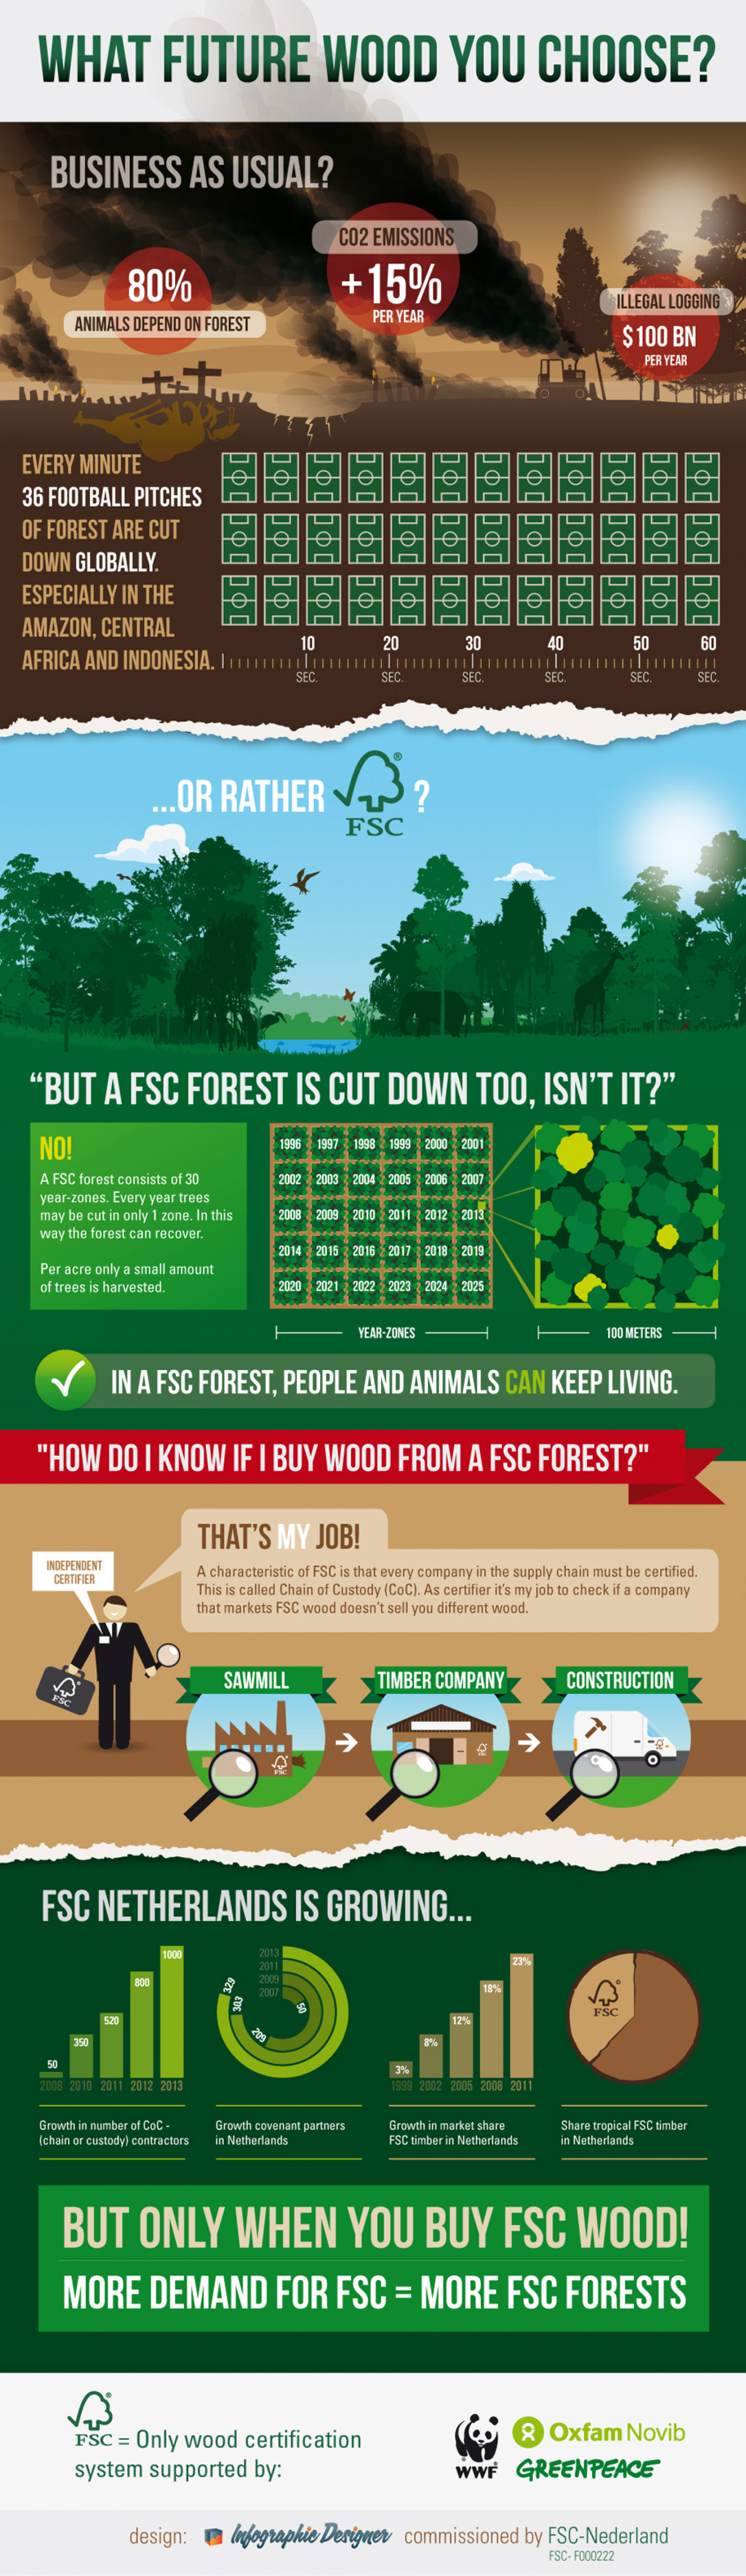 What future wood you choose? Infographic